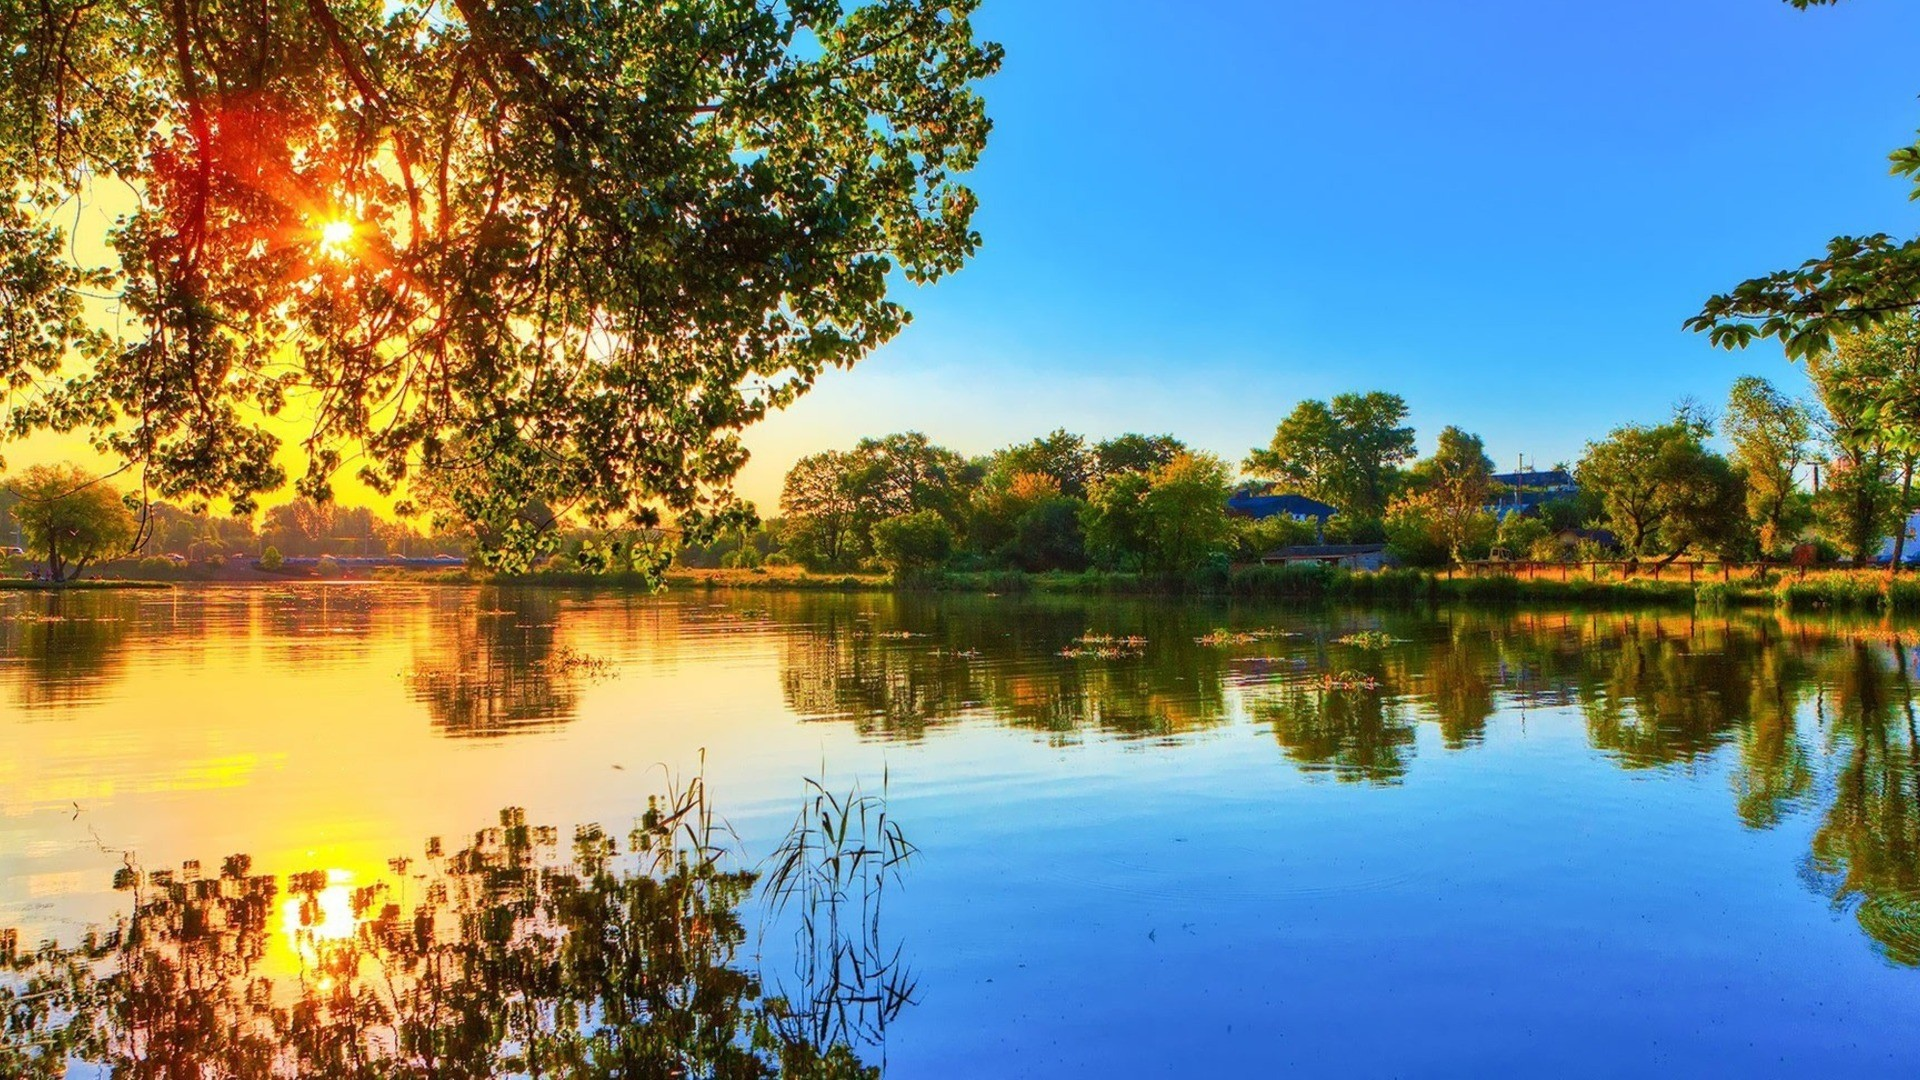 1080p 1920x1080 wallpaper,natural landscape,nature,reflection,sky,water